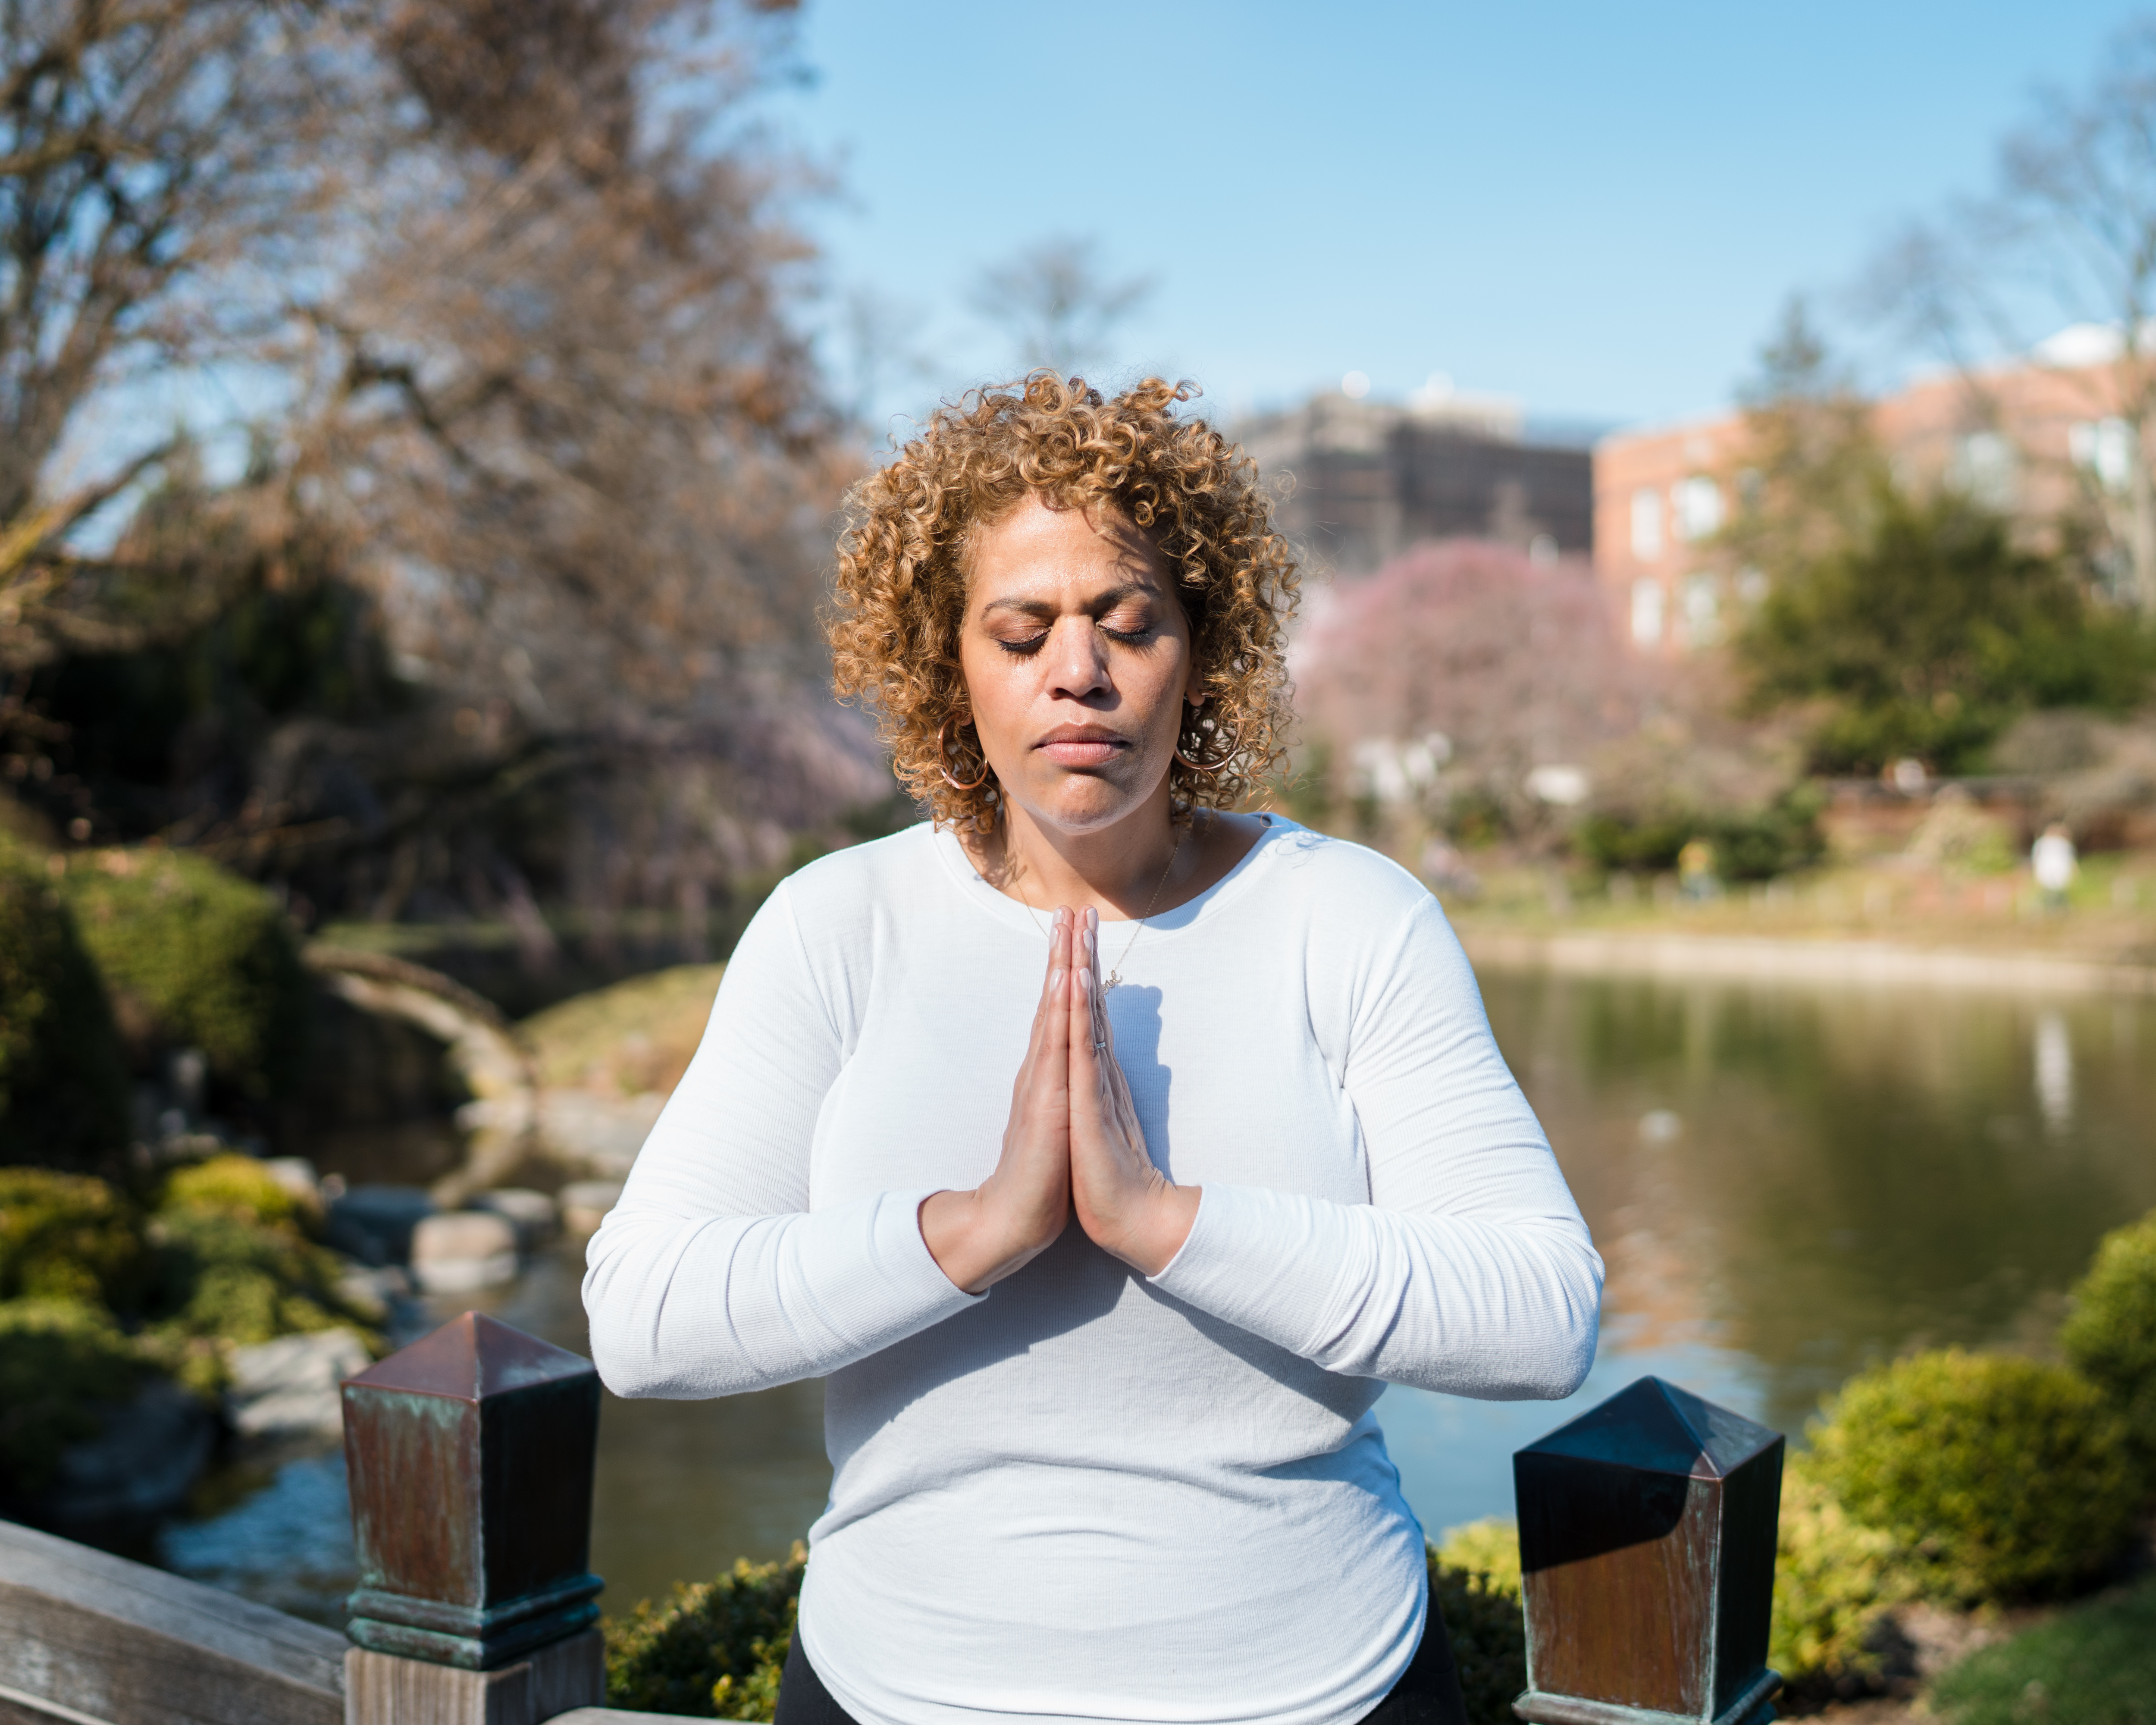 Tips for Creating a Meditation Practice